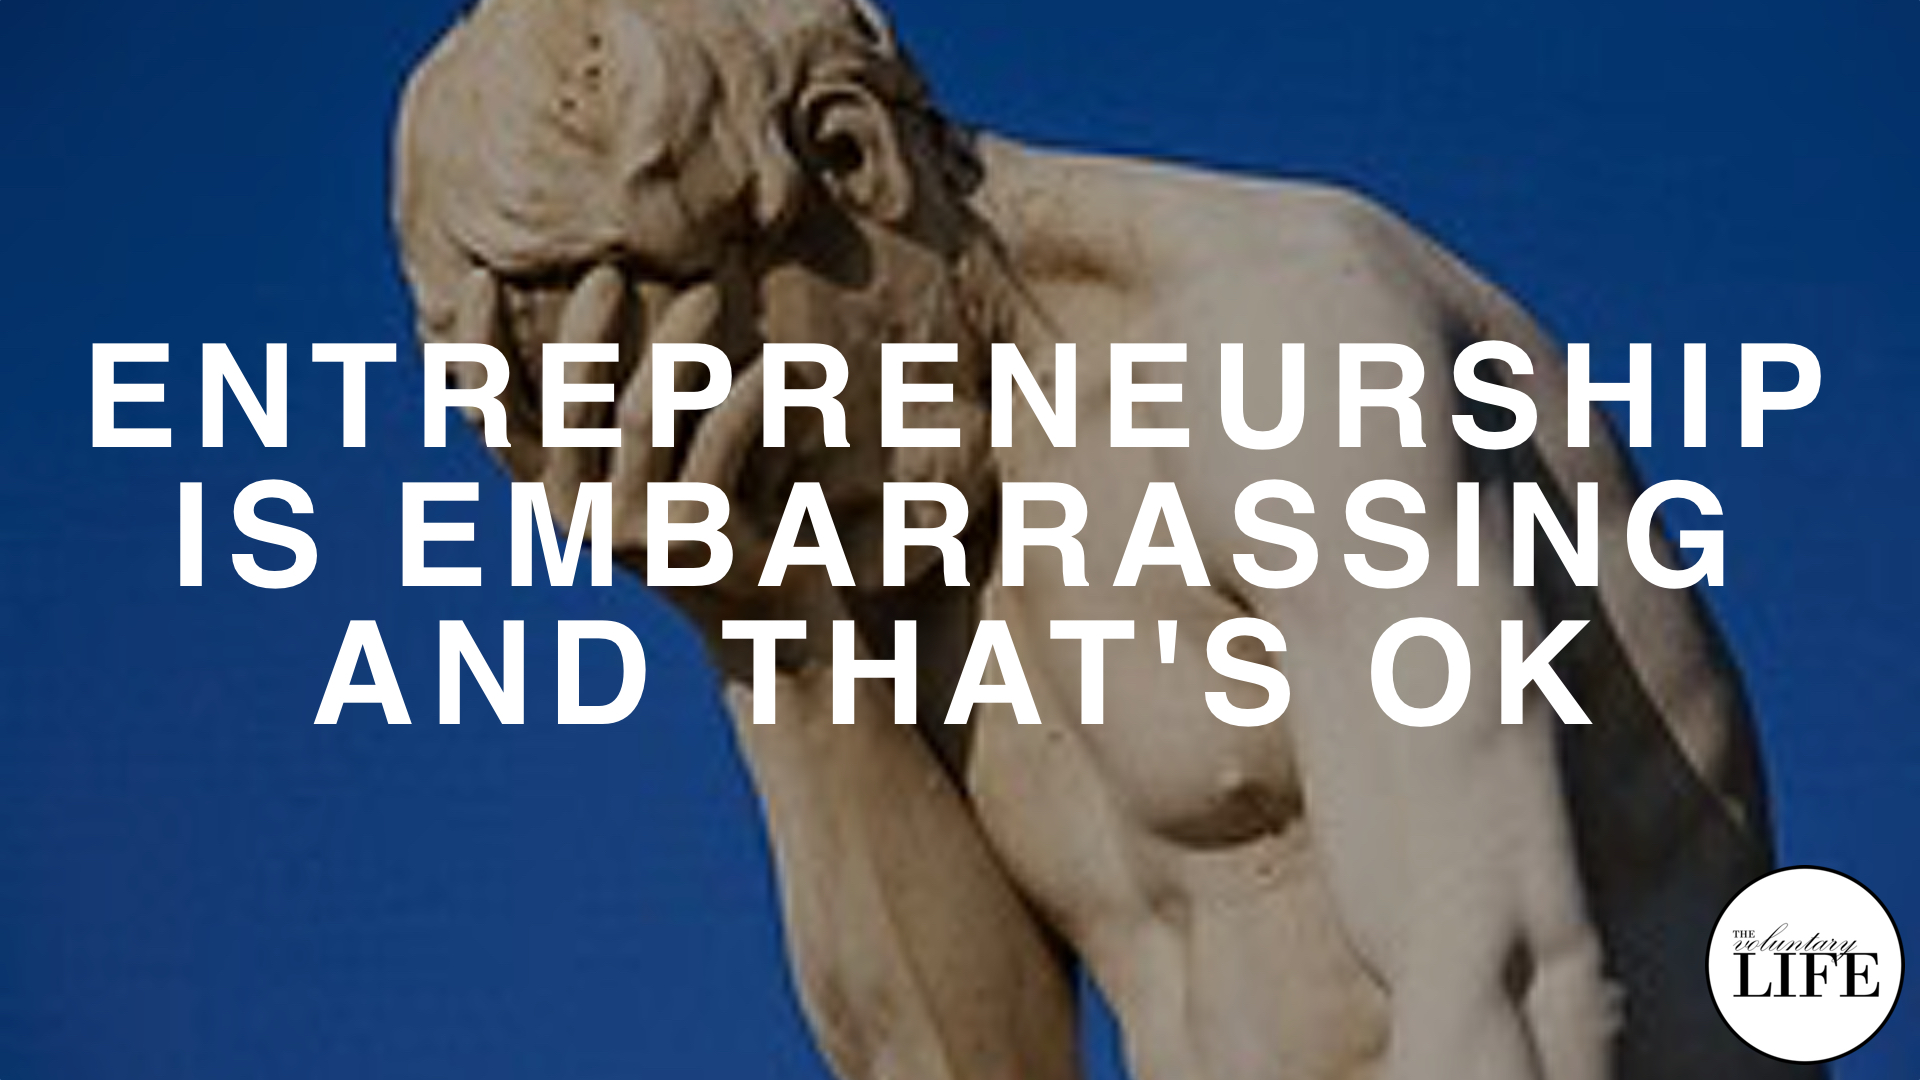 158 Entrepreneurship is Embarrassing And That's OK